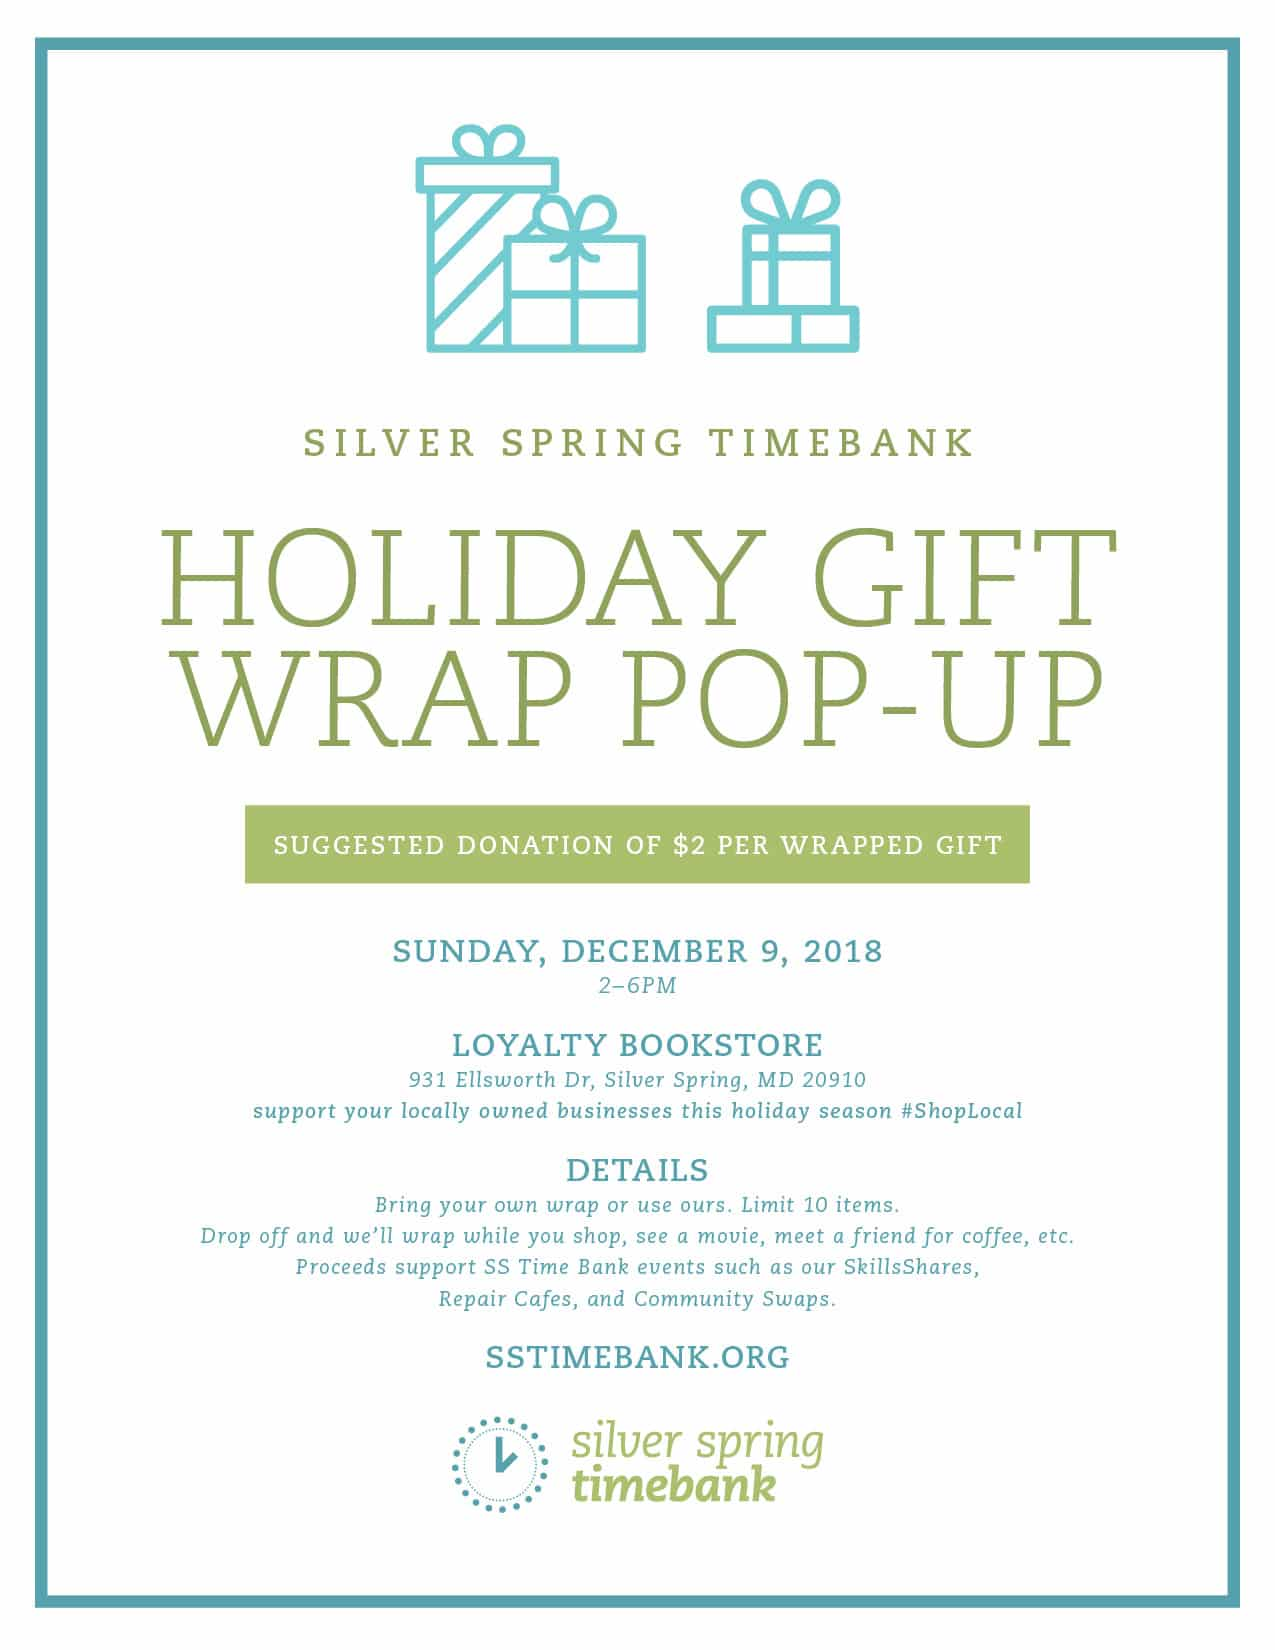 Silver Spring Time Bank Holiday Gift Wrap Pop-Up